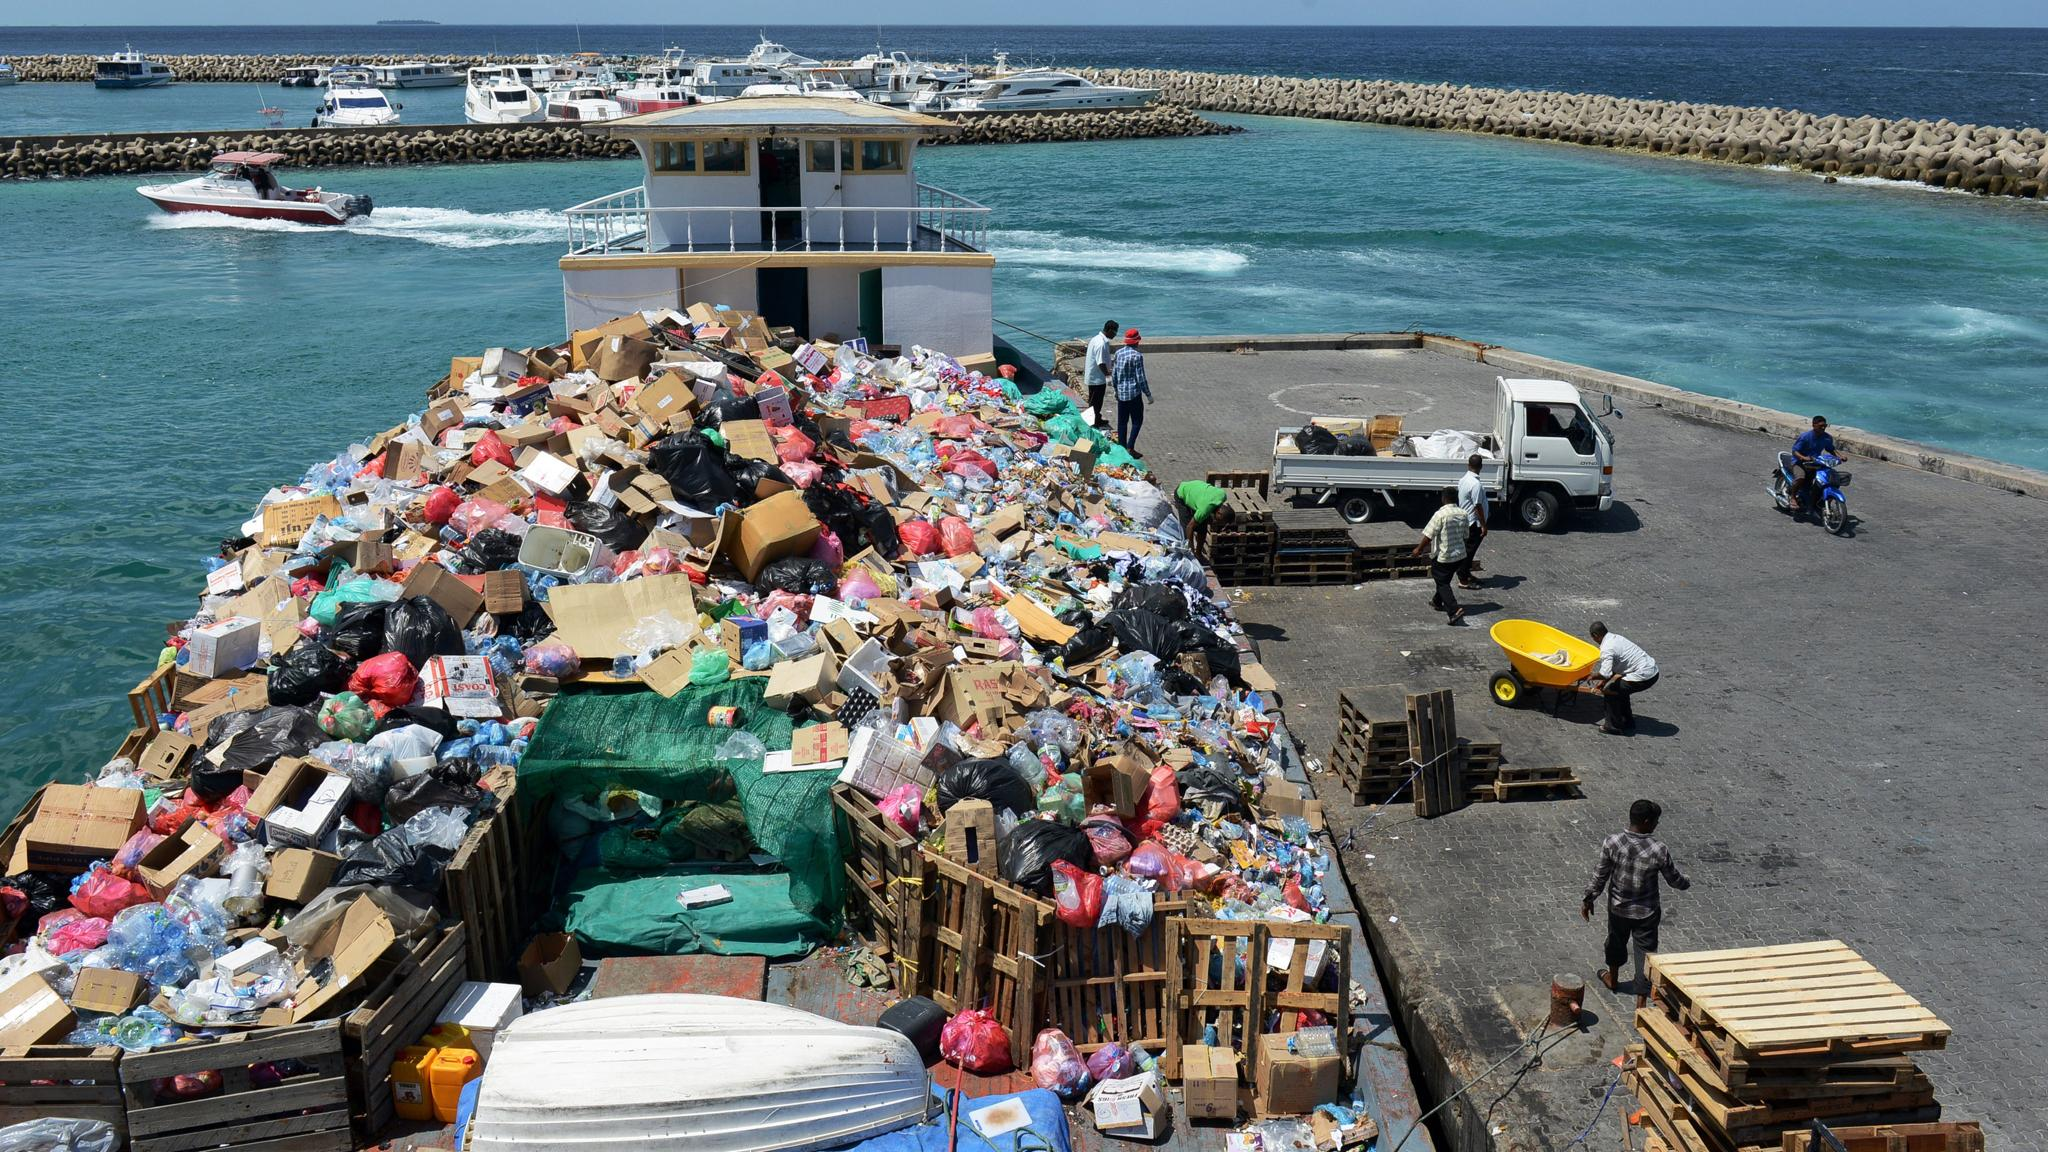 Senate Fail >> Maldives island swamped by rising tide of waste